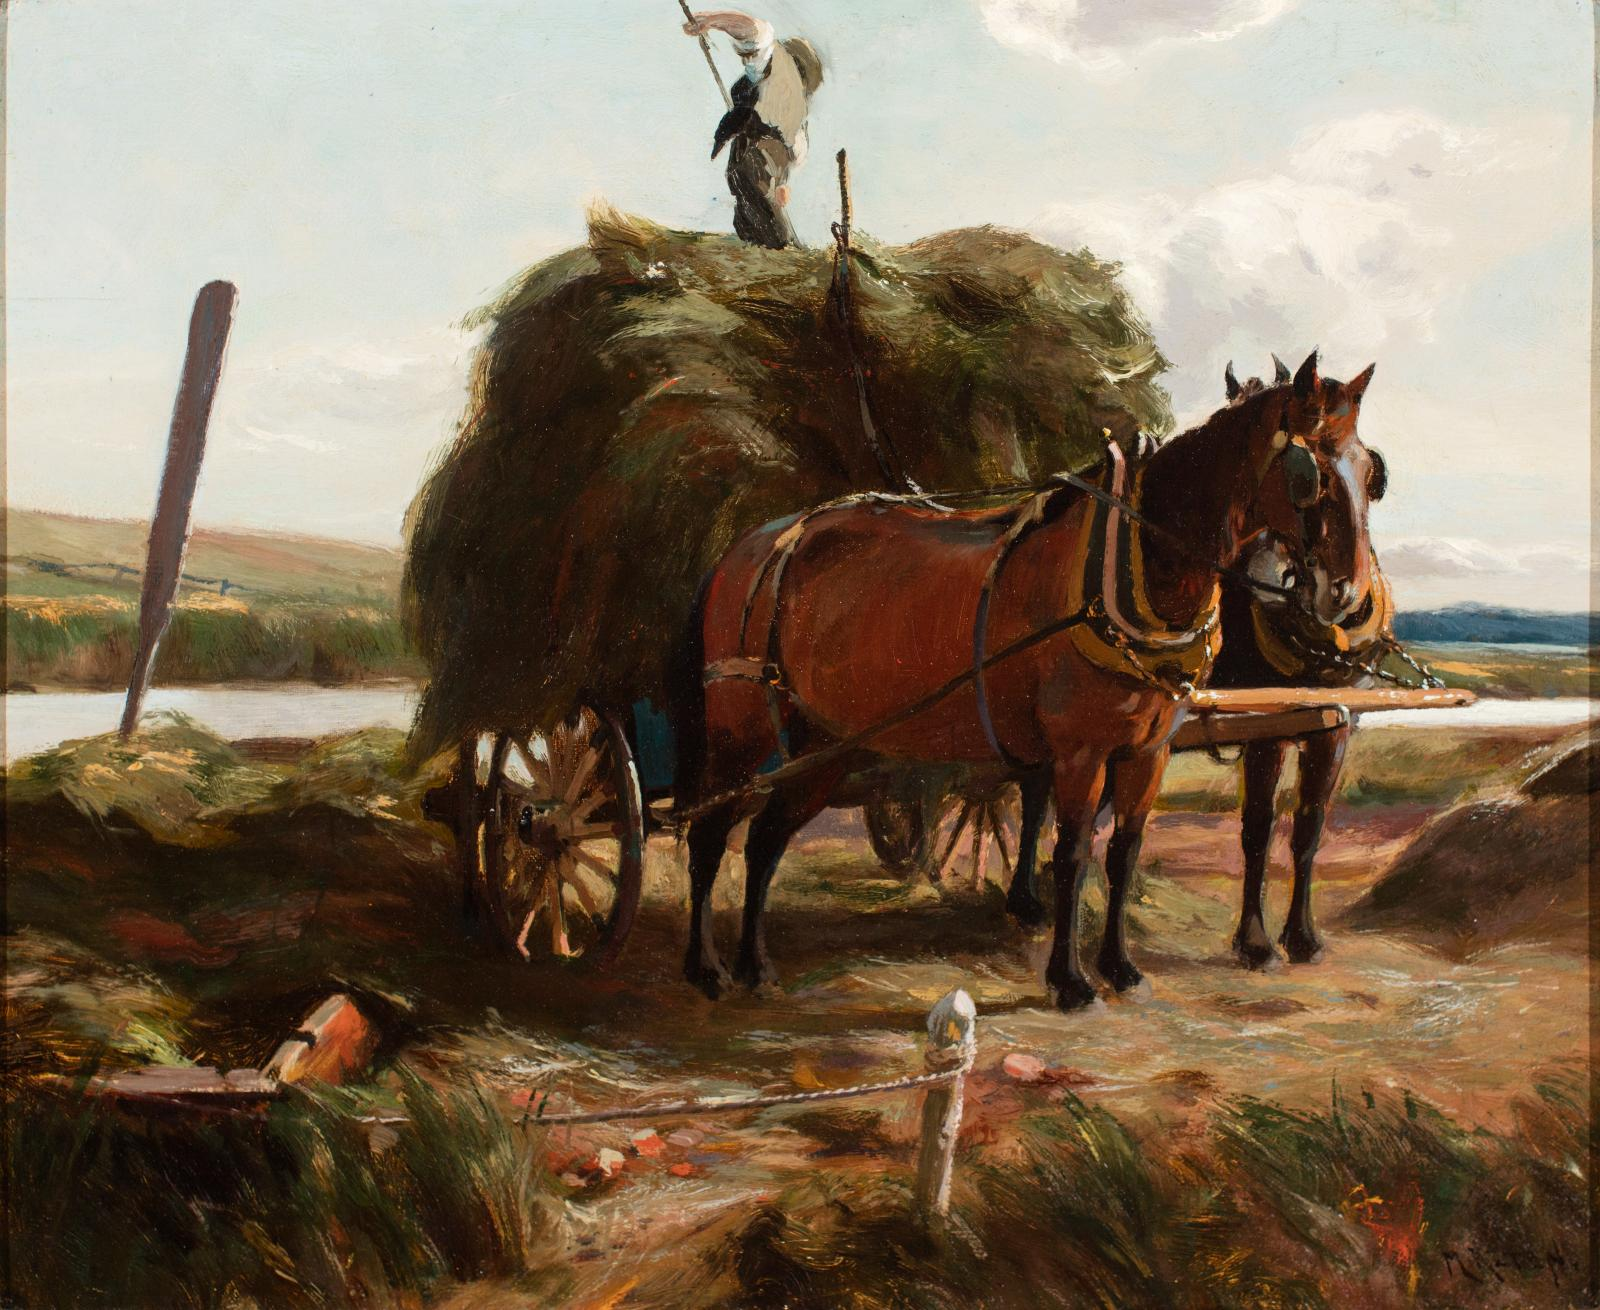 Man on top of a large pile of hay sitting in a horse-drawn cart.